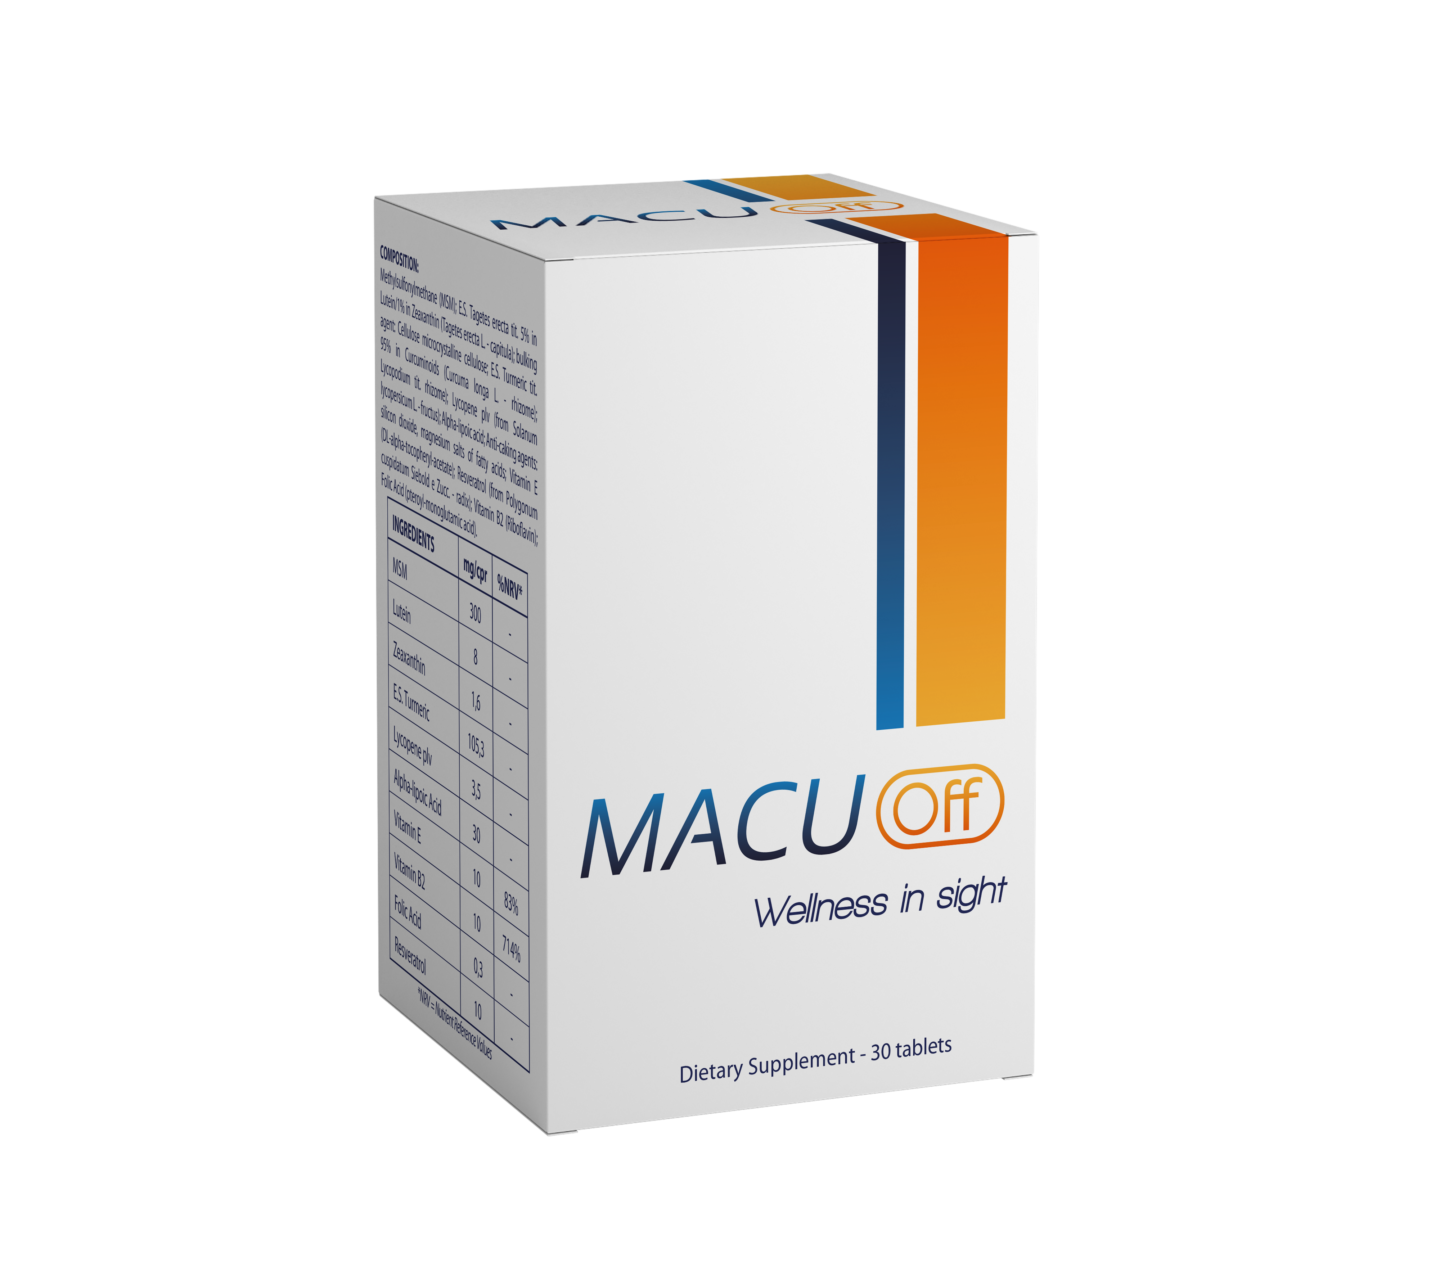 DIETARY SUPPLEMENT - MACUoff -